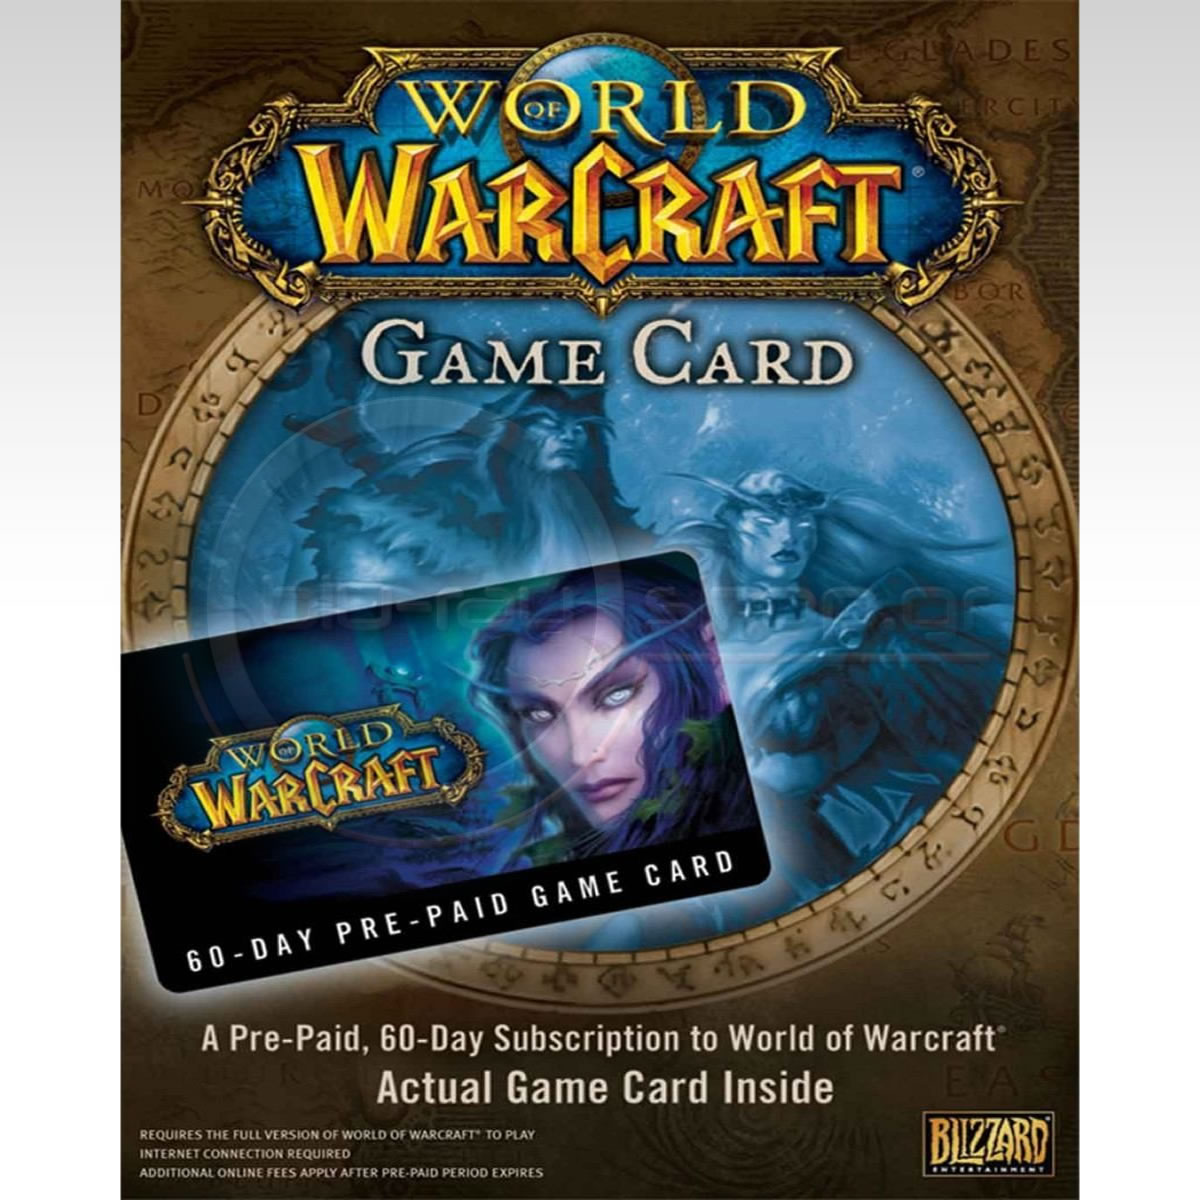 WORLD OF WARCRAFT 60-DAY PRE-PAID GAME CARD - WORLD OF WARCRAFT ΚΑΡΤΑ ΑΝΑΝΕΩΣΗΣ ΣΥΝΔΡΟΜΗΣ 60 ΗΜΕΡΩΝ (PC)